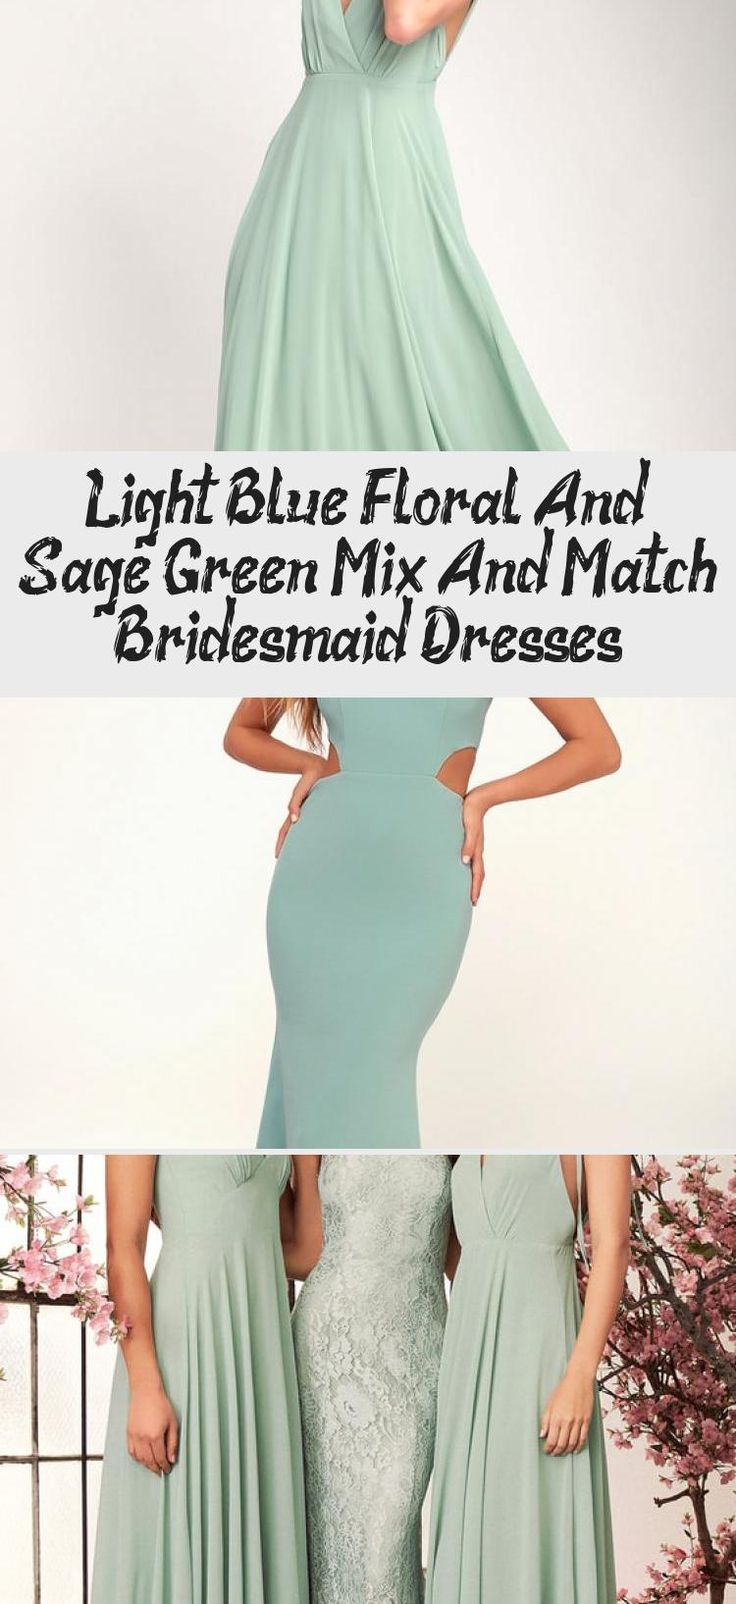 Blue floral and mist sage green mismatched bridesmaid dresses by Jenny Yoo #BridesmaidDressesFall #MaroonBridesmaidDresses #WeddingBridesmaidDresses #BridesmaidDressesTurquoise #NeutralBridesmaidDresses